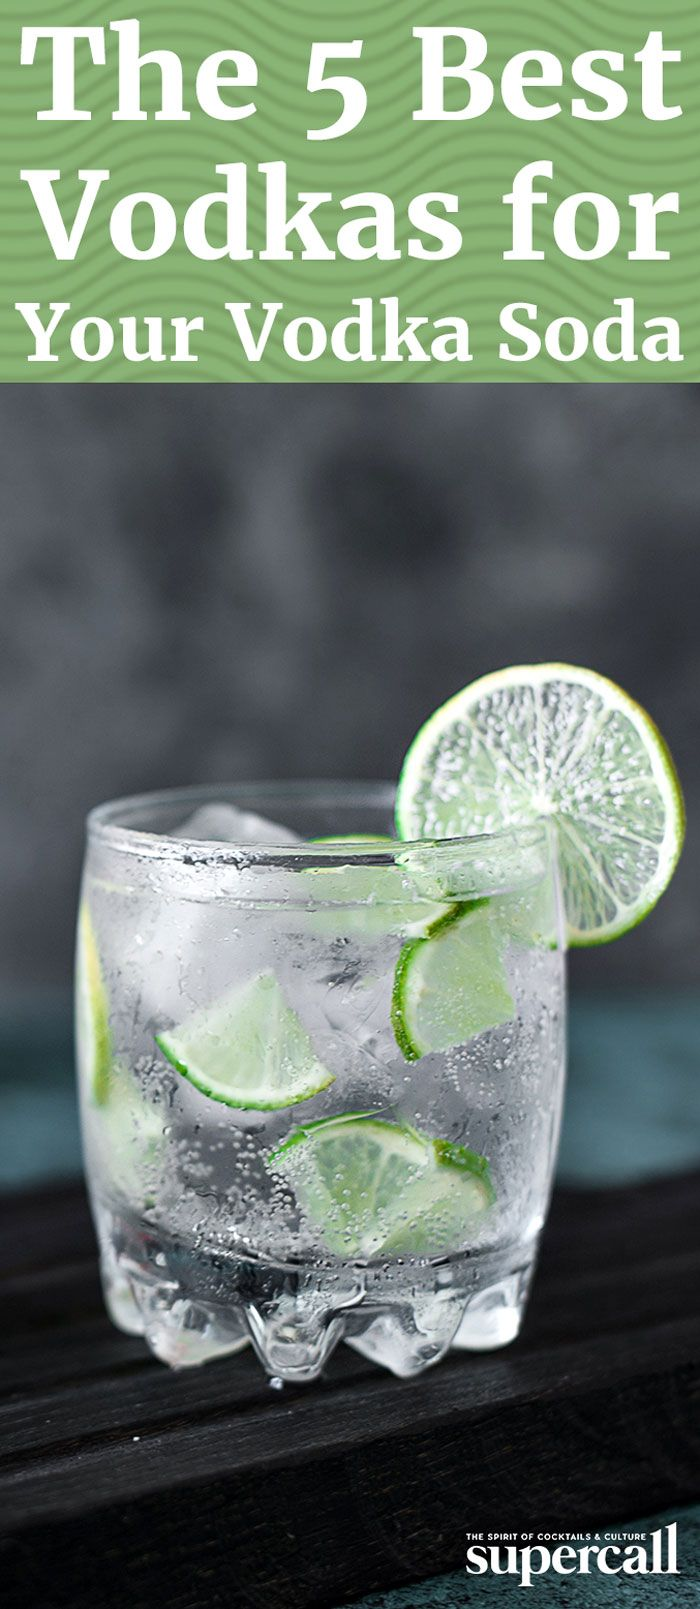 Here are five of the best vodkas to use in a Vodka Soda, from a garden-fresh Japanese vodka to a lovely, cucumber-flavored variety.